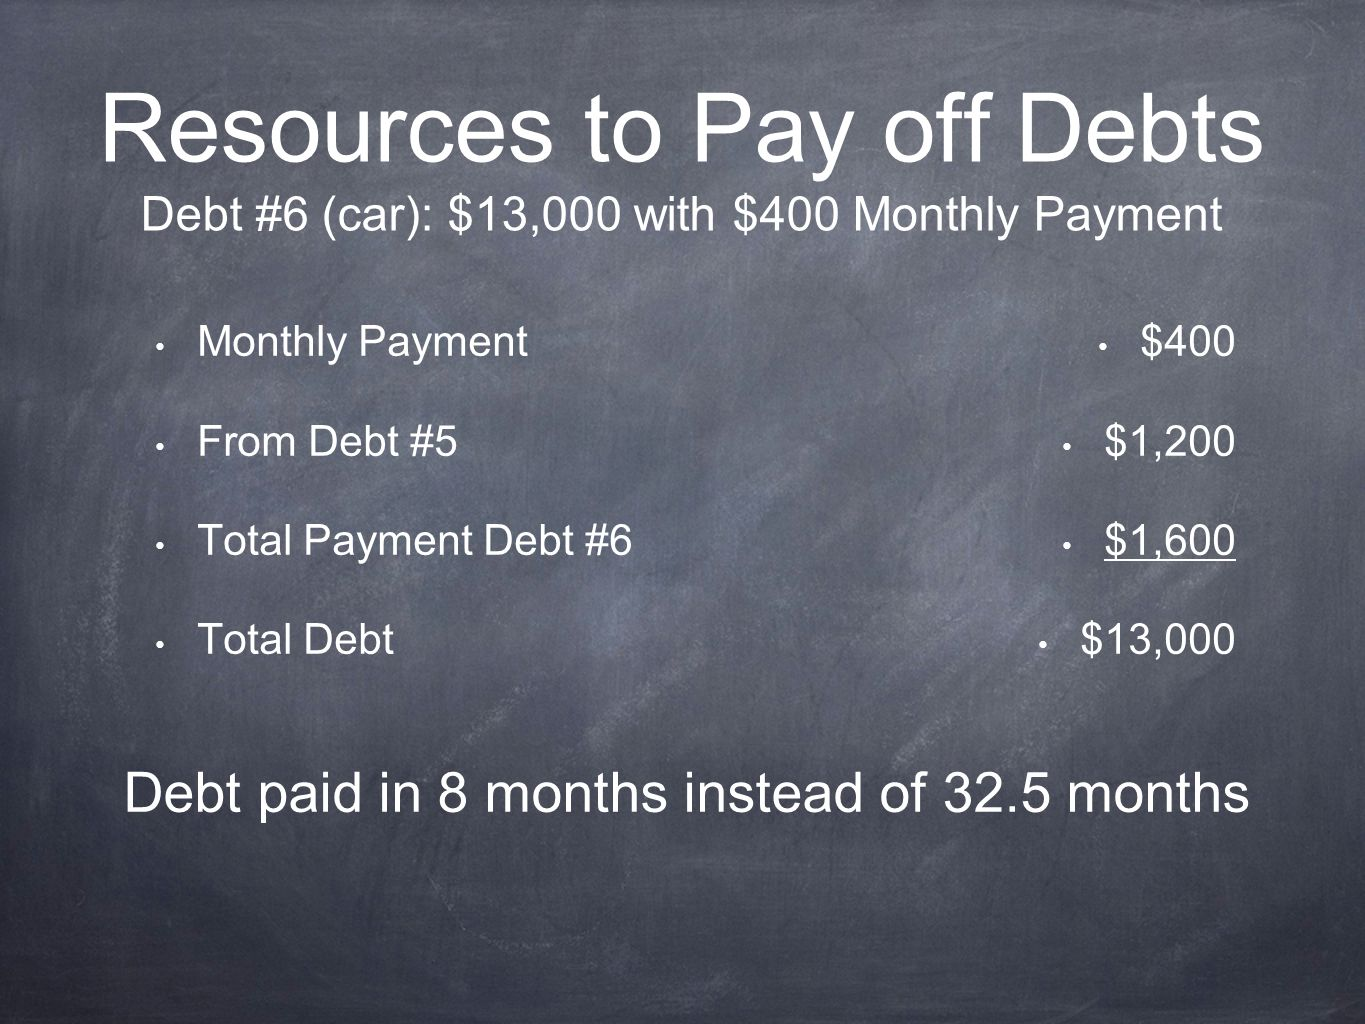 Resources to Pay off Debts Debt #6 (car): $13,000 with $400 Monthly Payment Monthly Payment From Debt #5 Total Payment Debt #6 Total Debt $400 $1,200 $1,600 $13,000 Debt paid in 8 months instead of 32.5 months